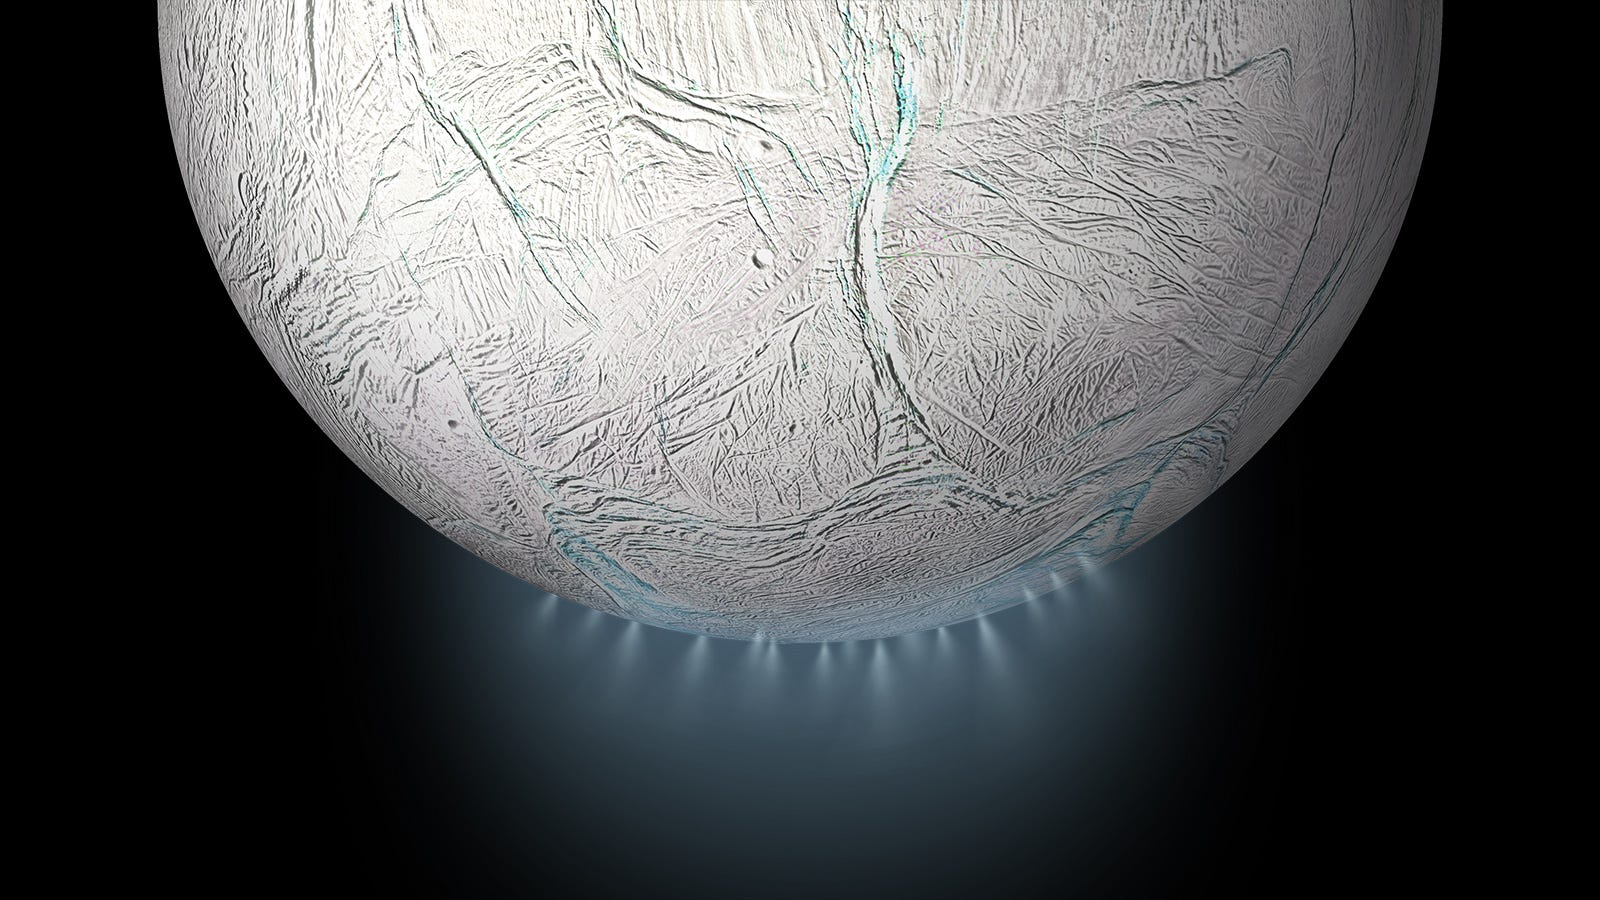 Report: NASA and Yuri Milner Working Together on Life-Hunting Mission to Enceladus